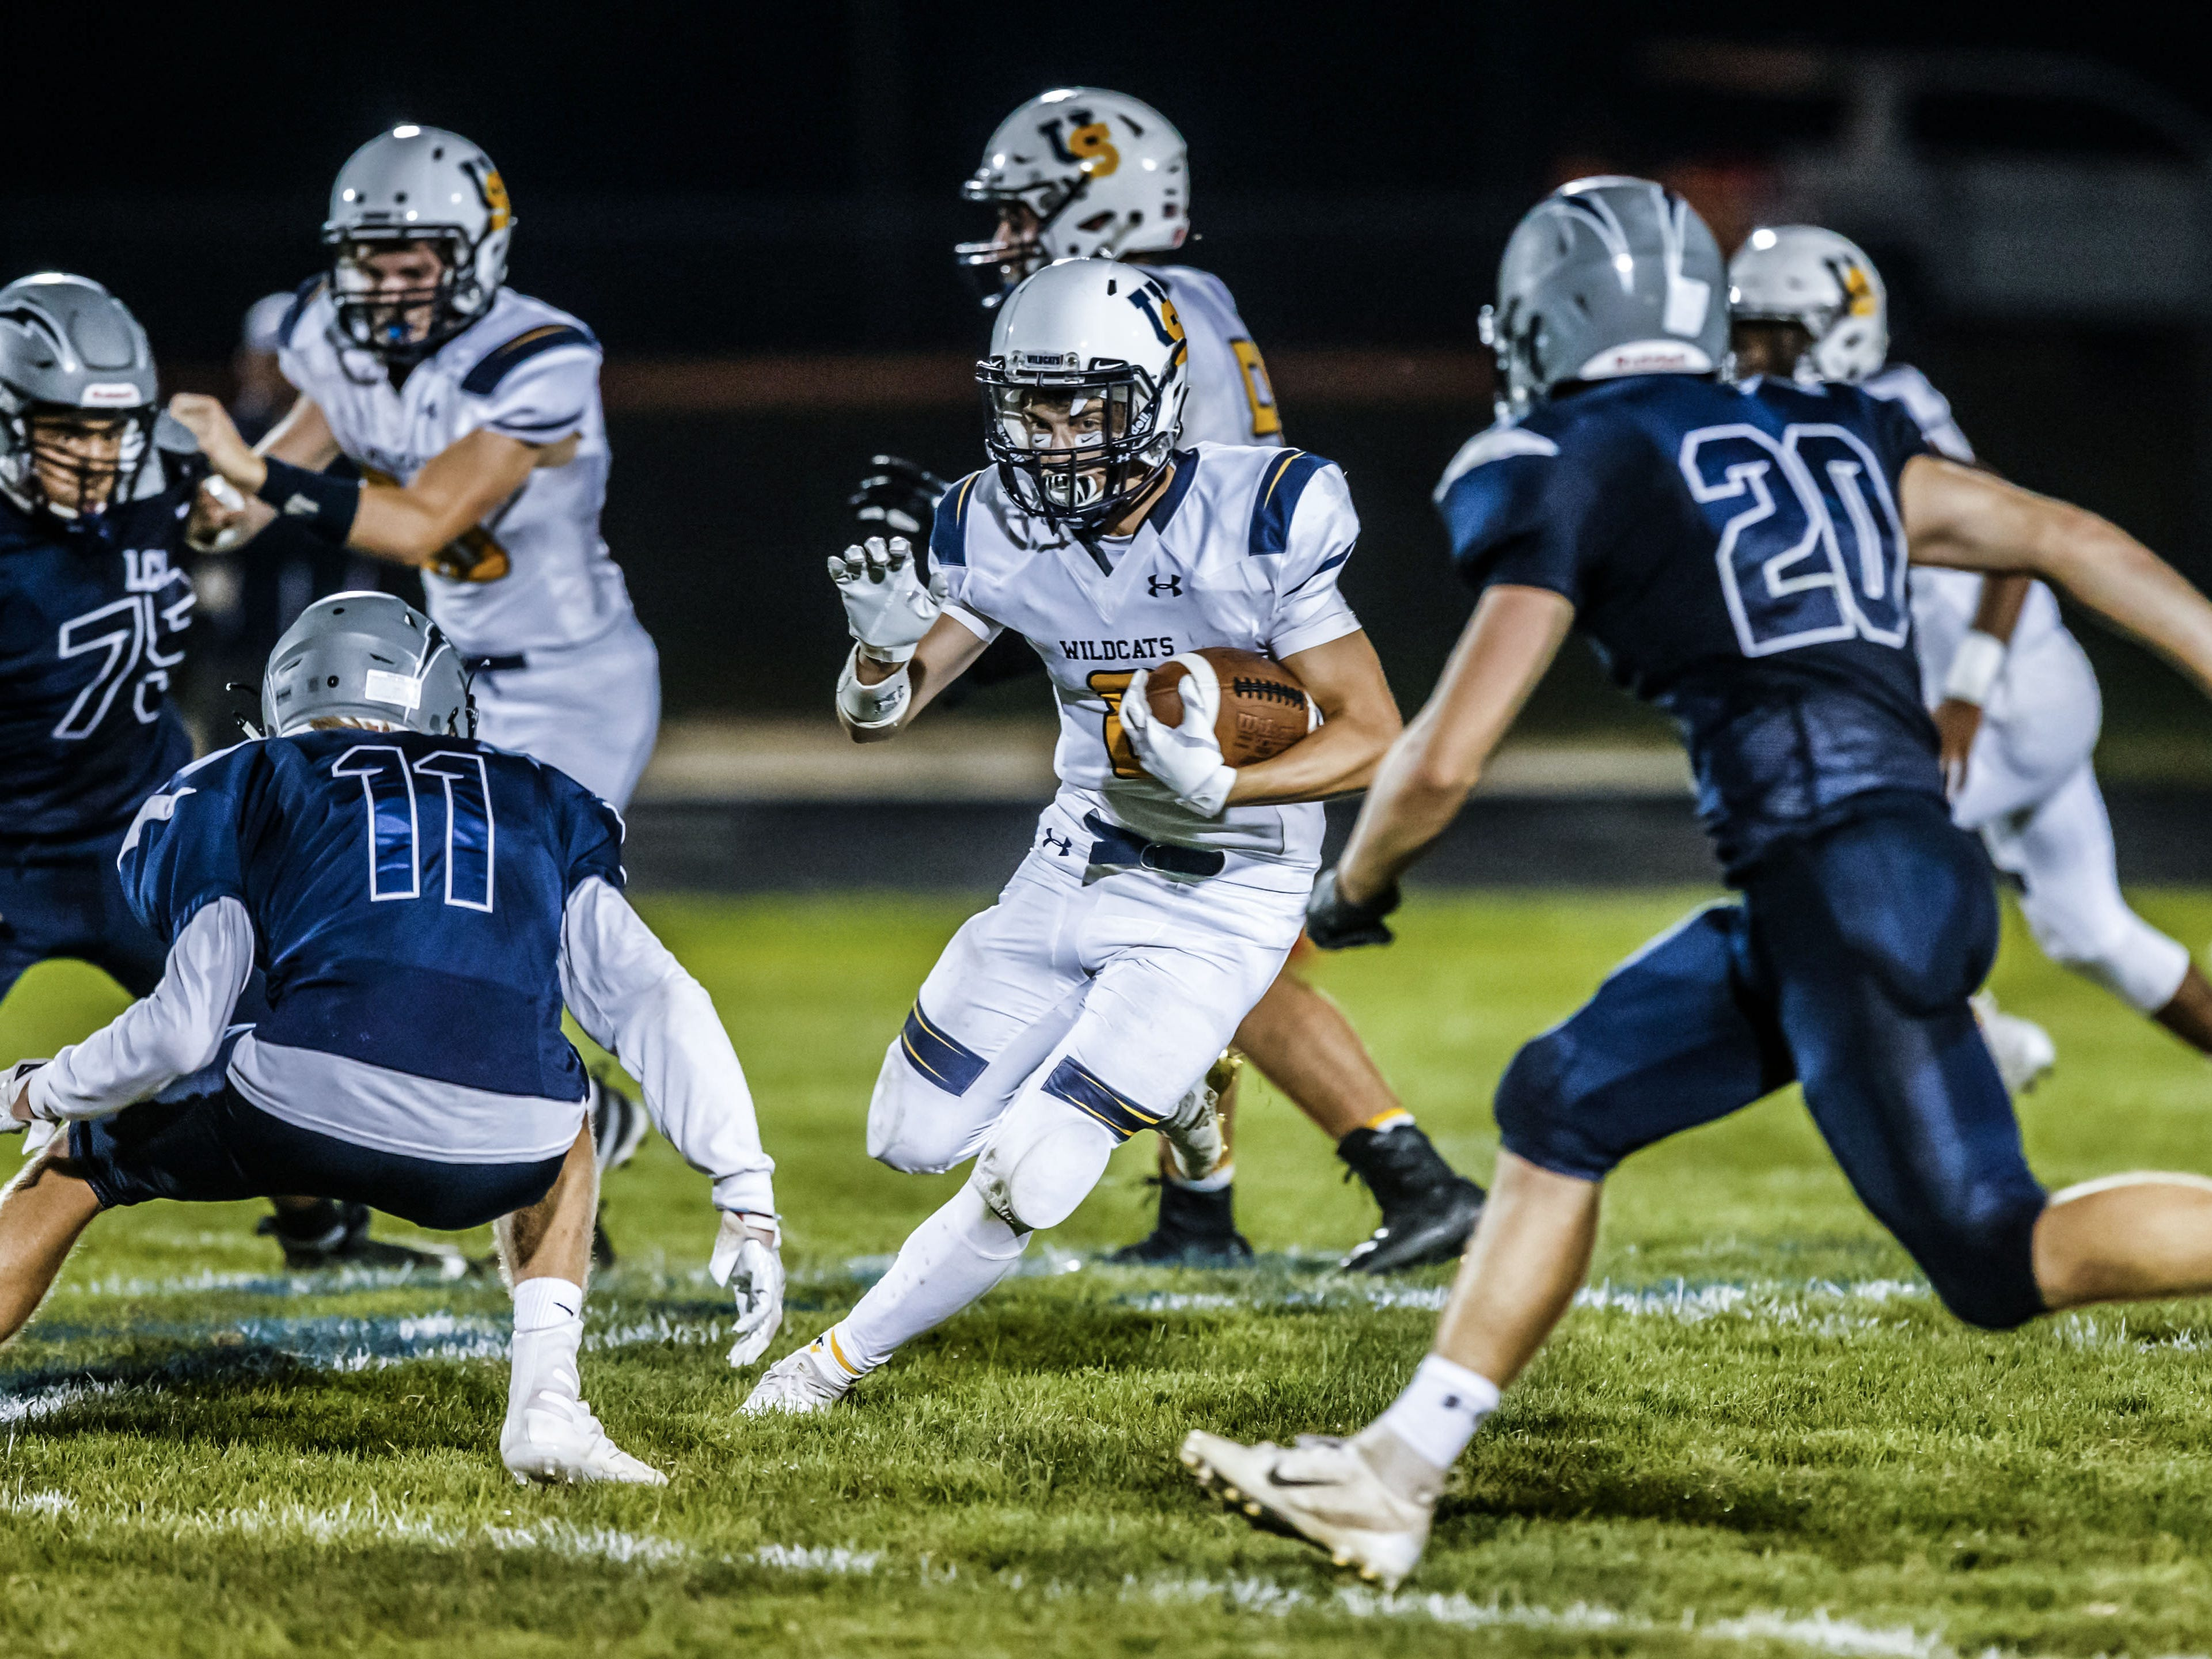 University School running back Gordy Leech (8) weaves through defenders during the game at Lake Country Lutheran on Thursday, Sept. 13, 2018.